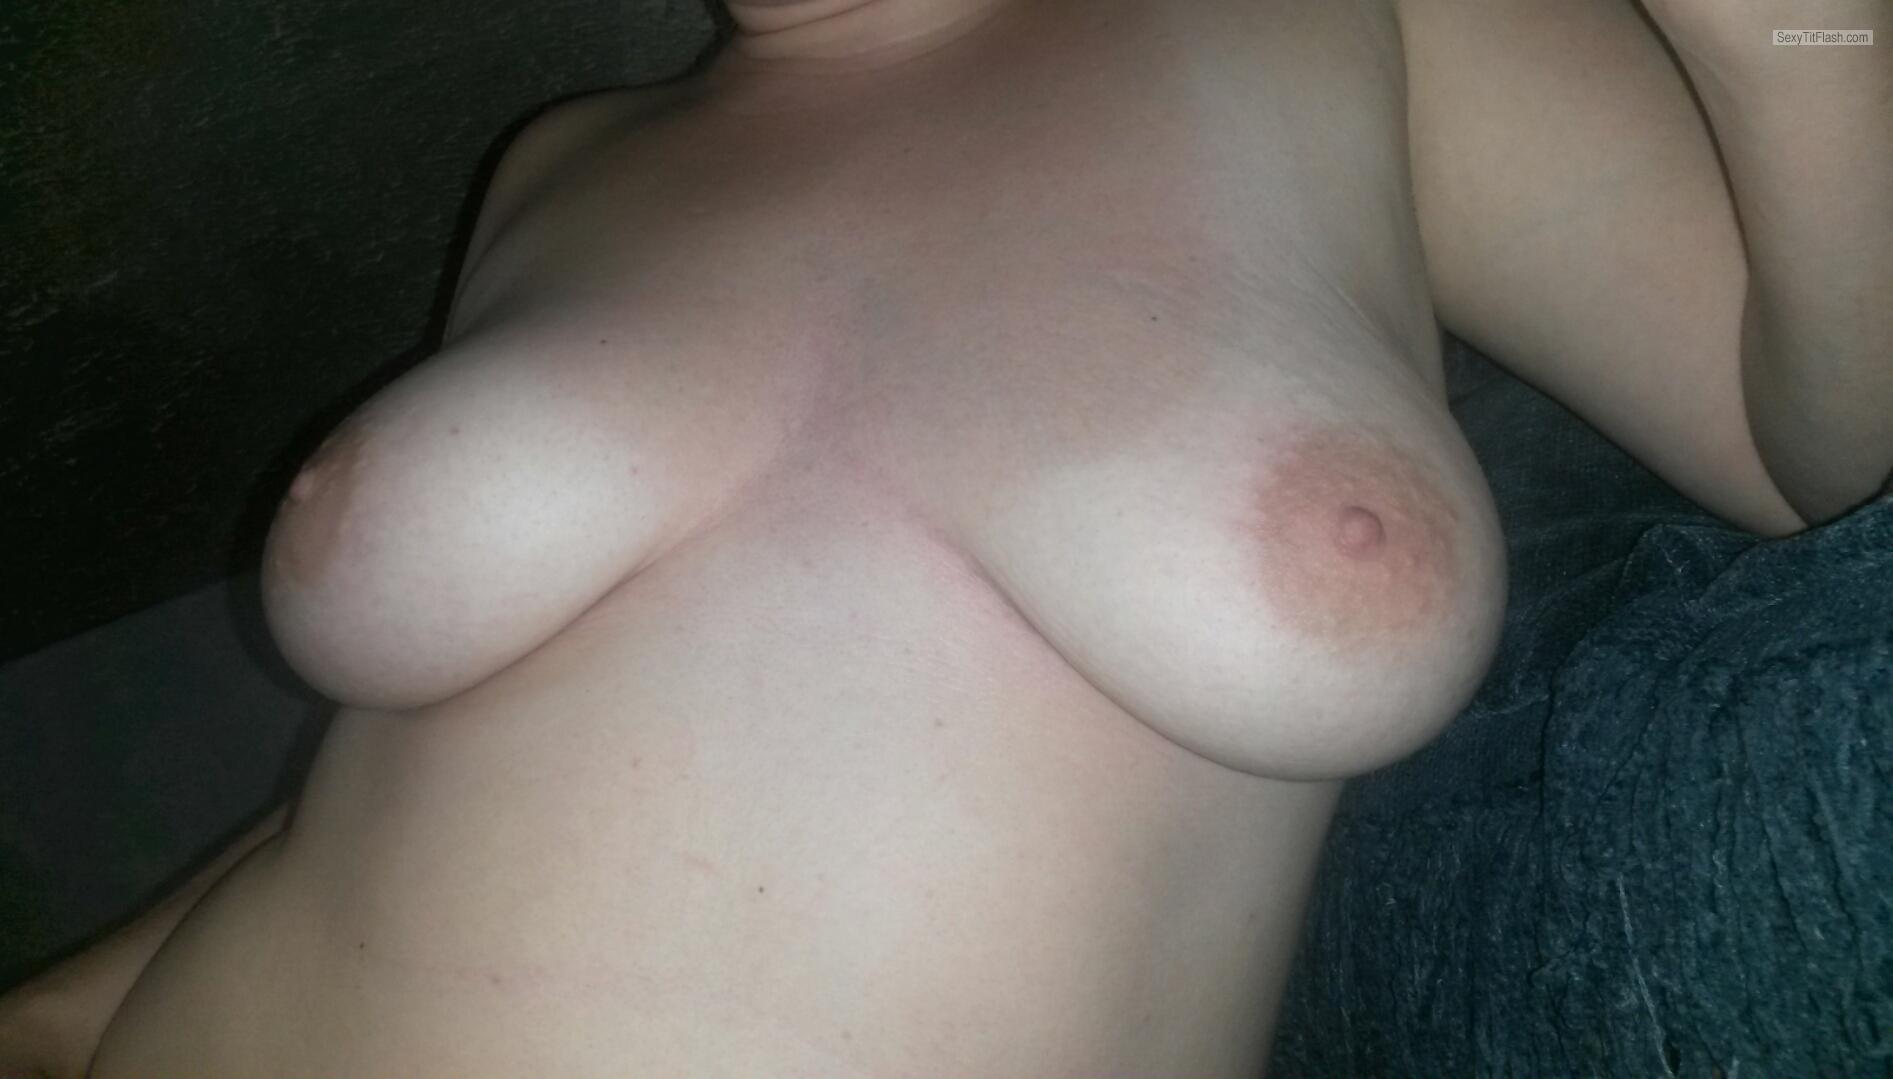 Tit Flash: My Medium Tits - Penny Lane from United Kingdom